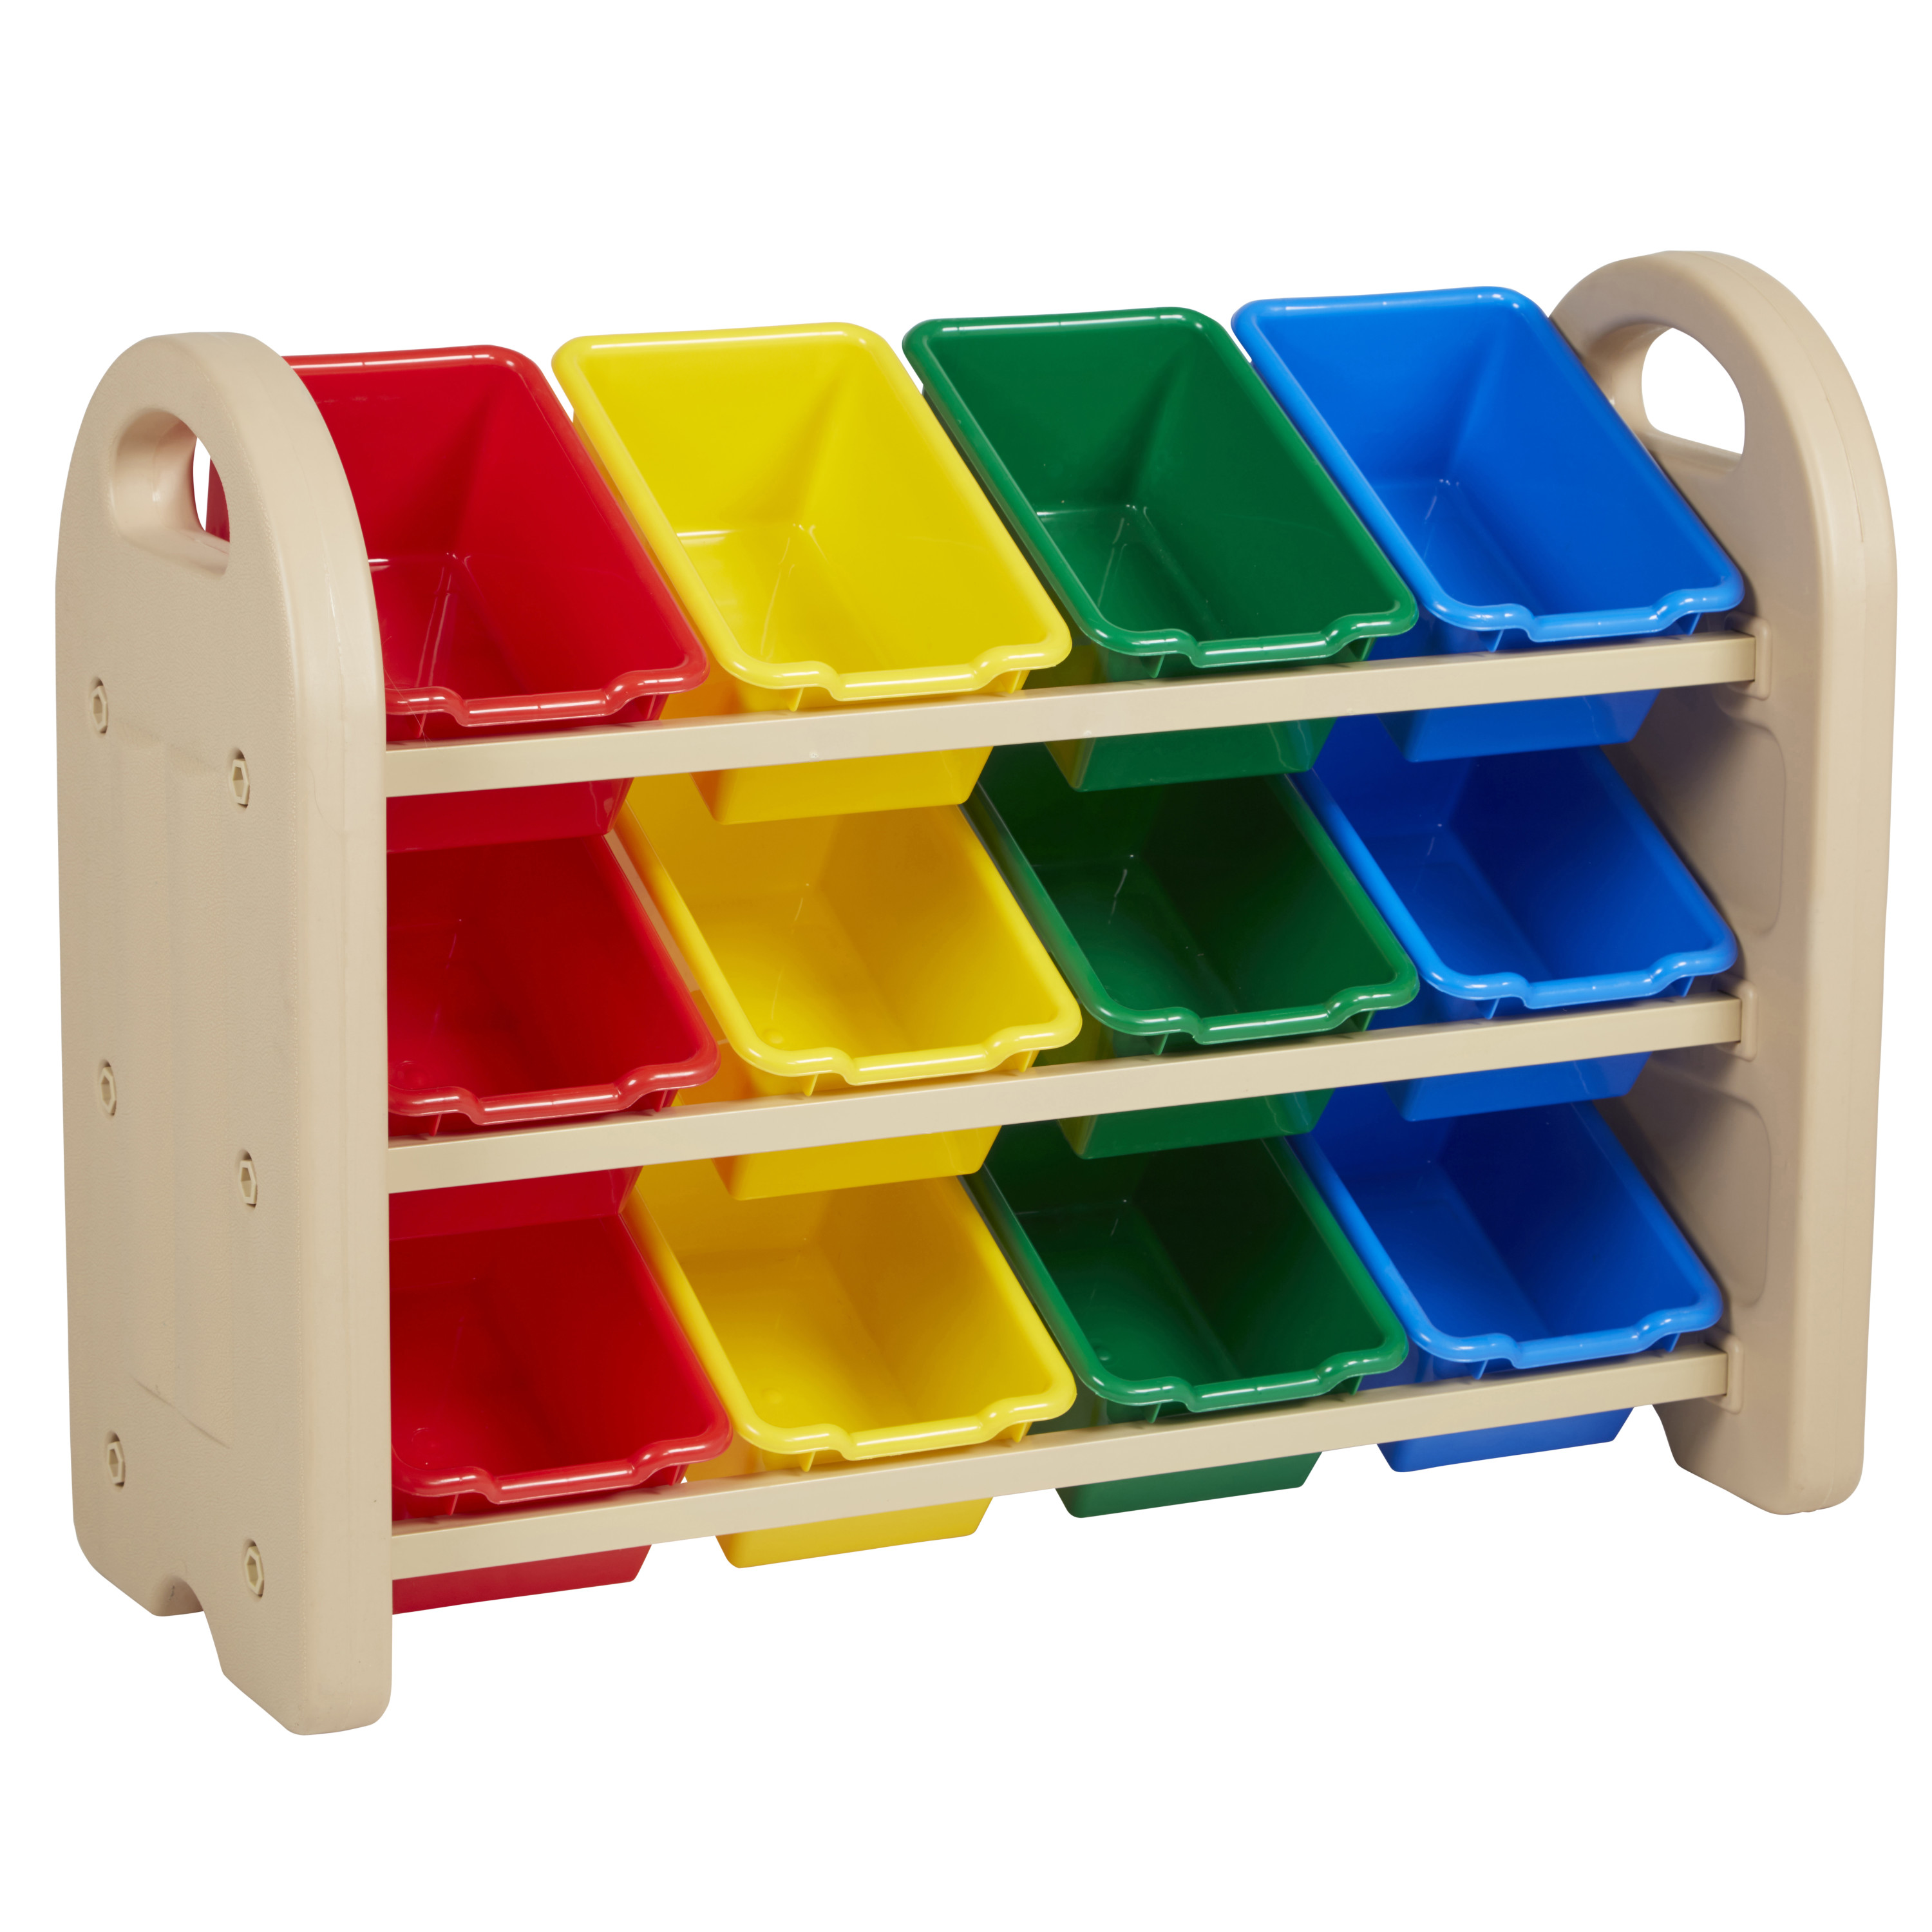 3-Tier Storage Organizer with Assorted Bins - Sand